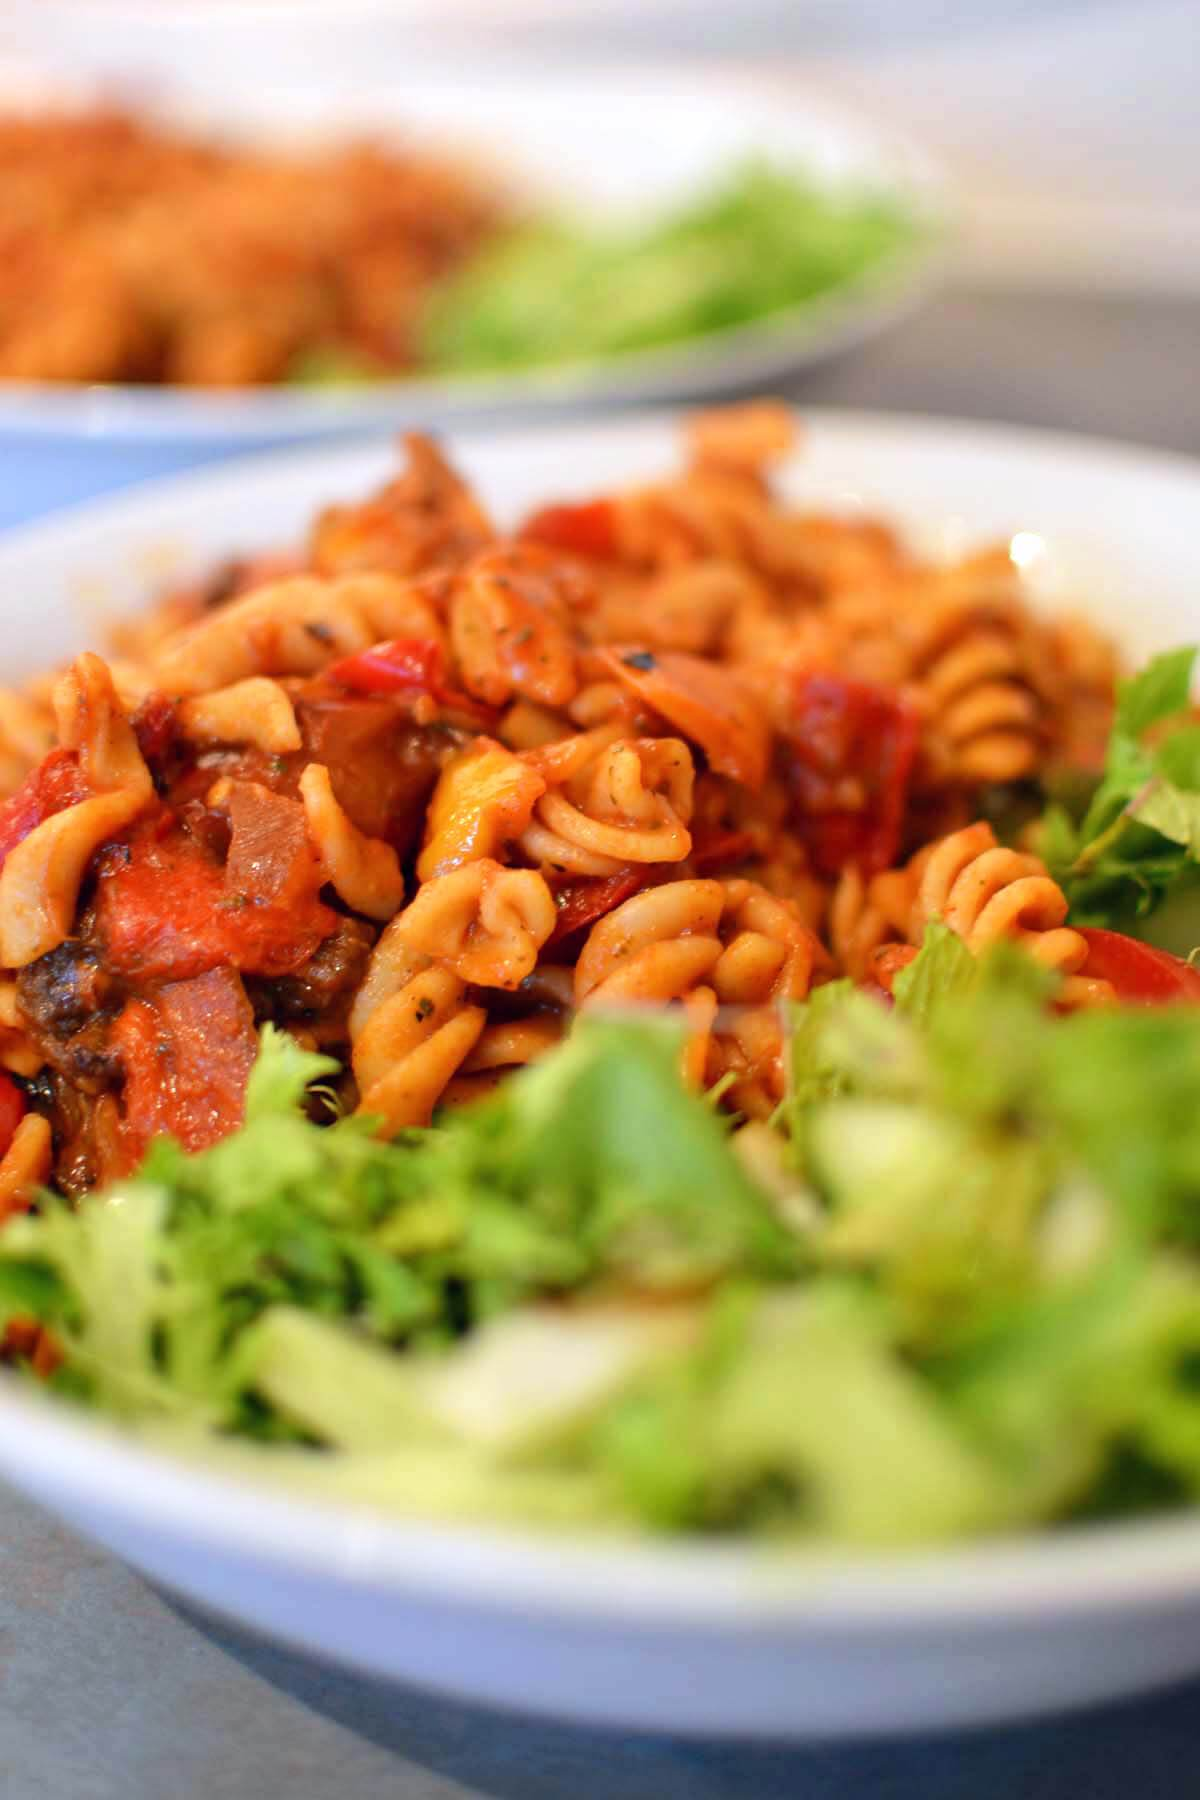 Pasta with tomato sauce and roasted veg